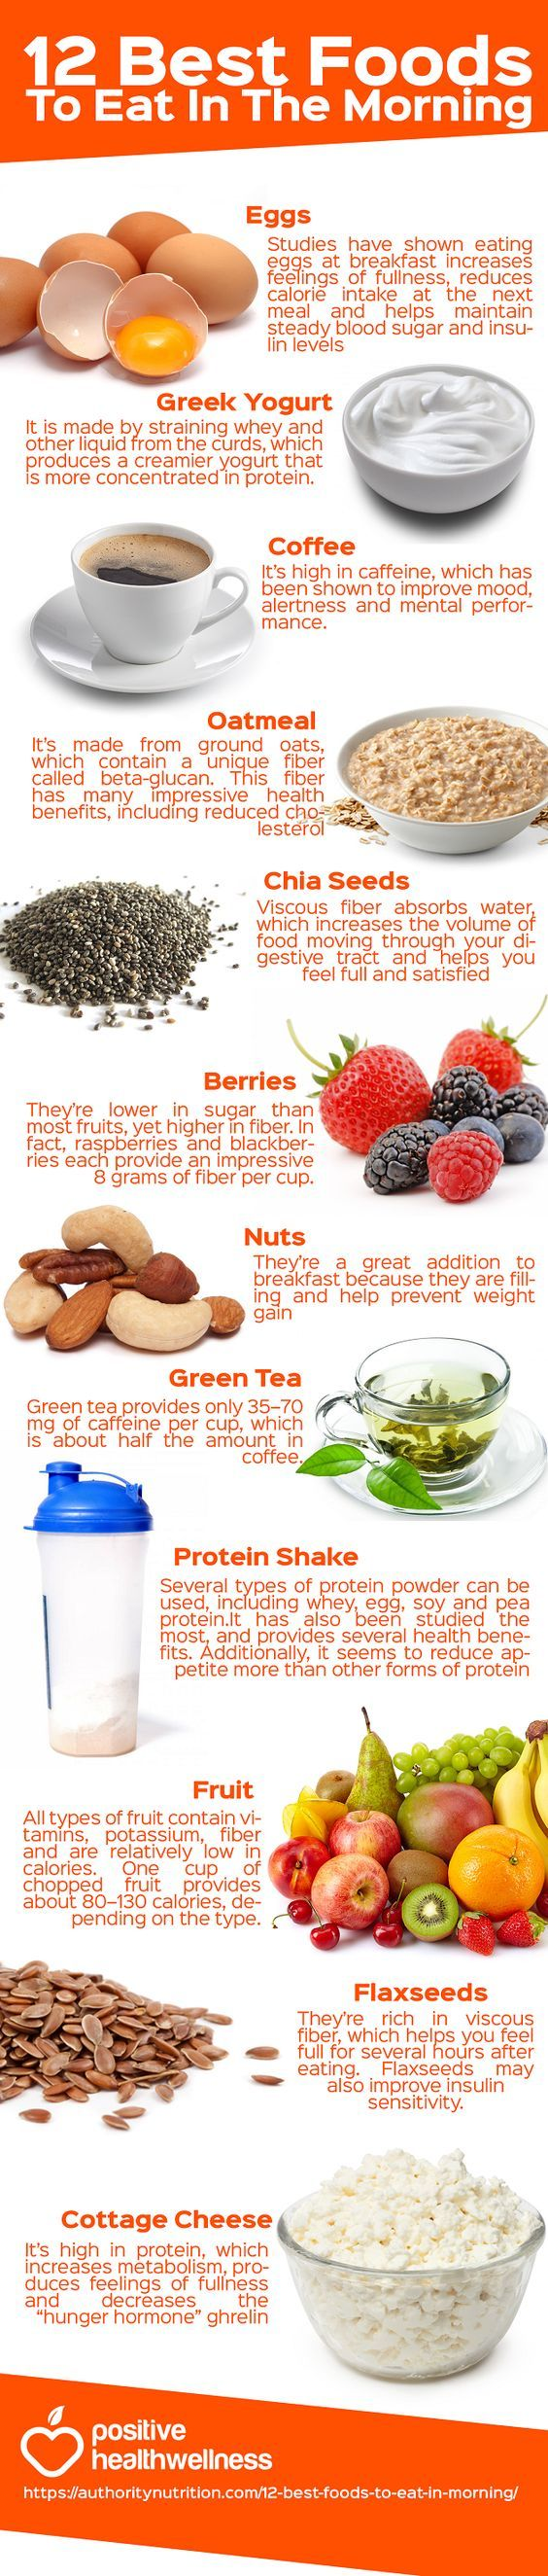 Diet Plans: 12 best foods to eat in the morning includes ...